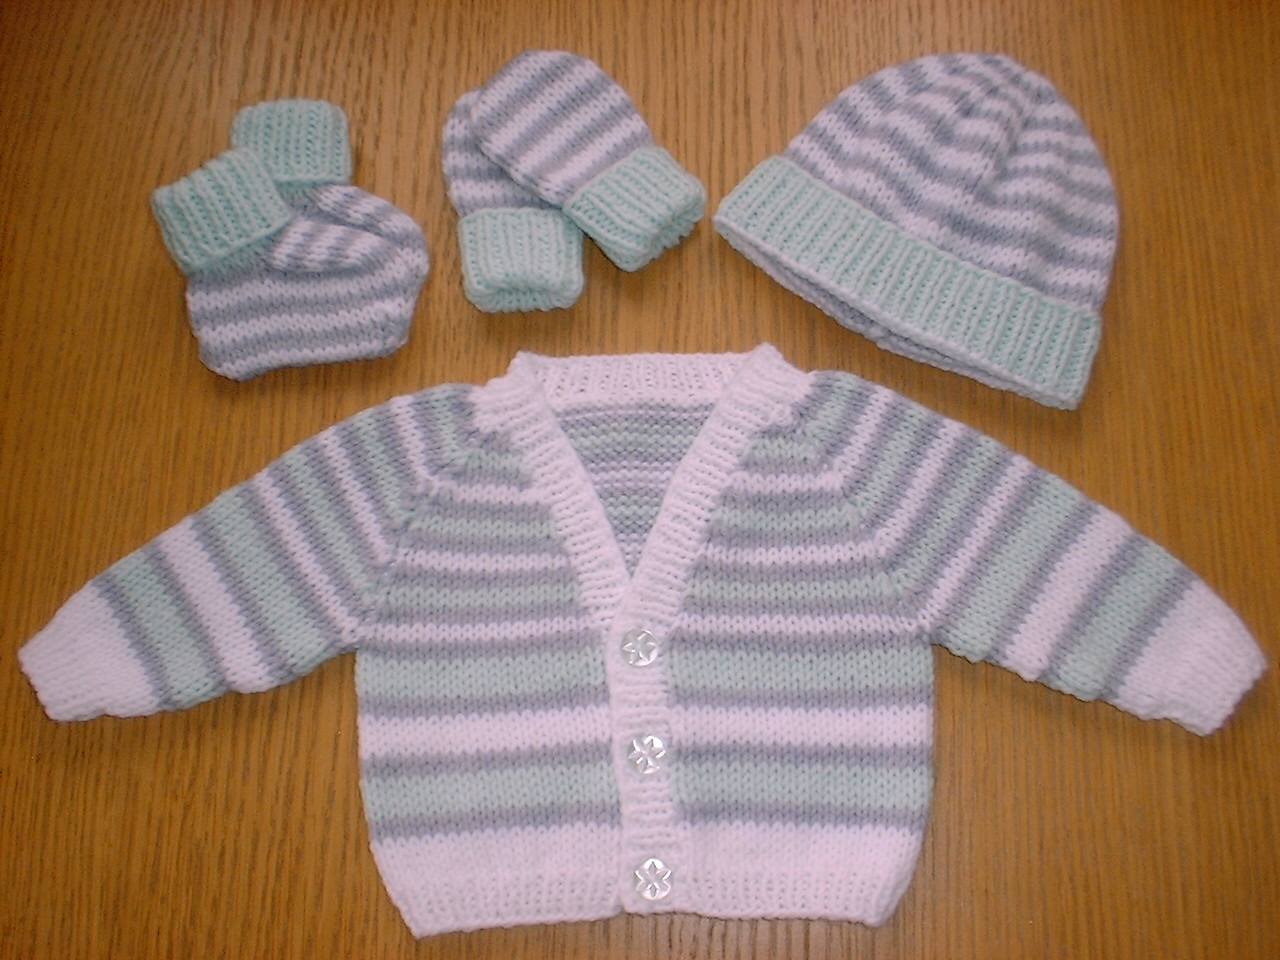 Free Baby Knitting Patterns Only : Angela Turner Designs